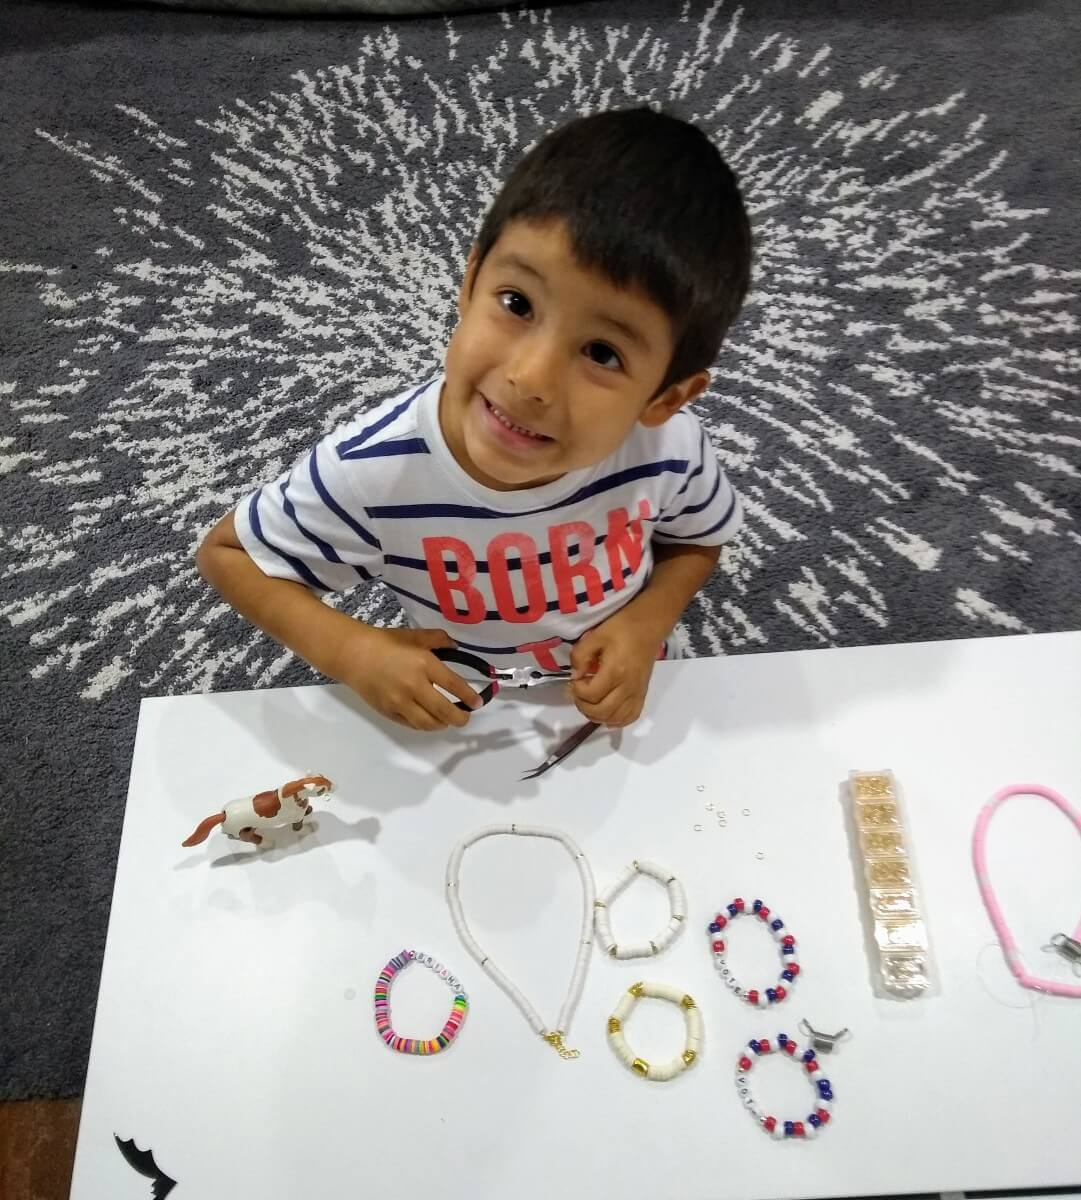 young boy making bracelets for shining brownies to help other kids